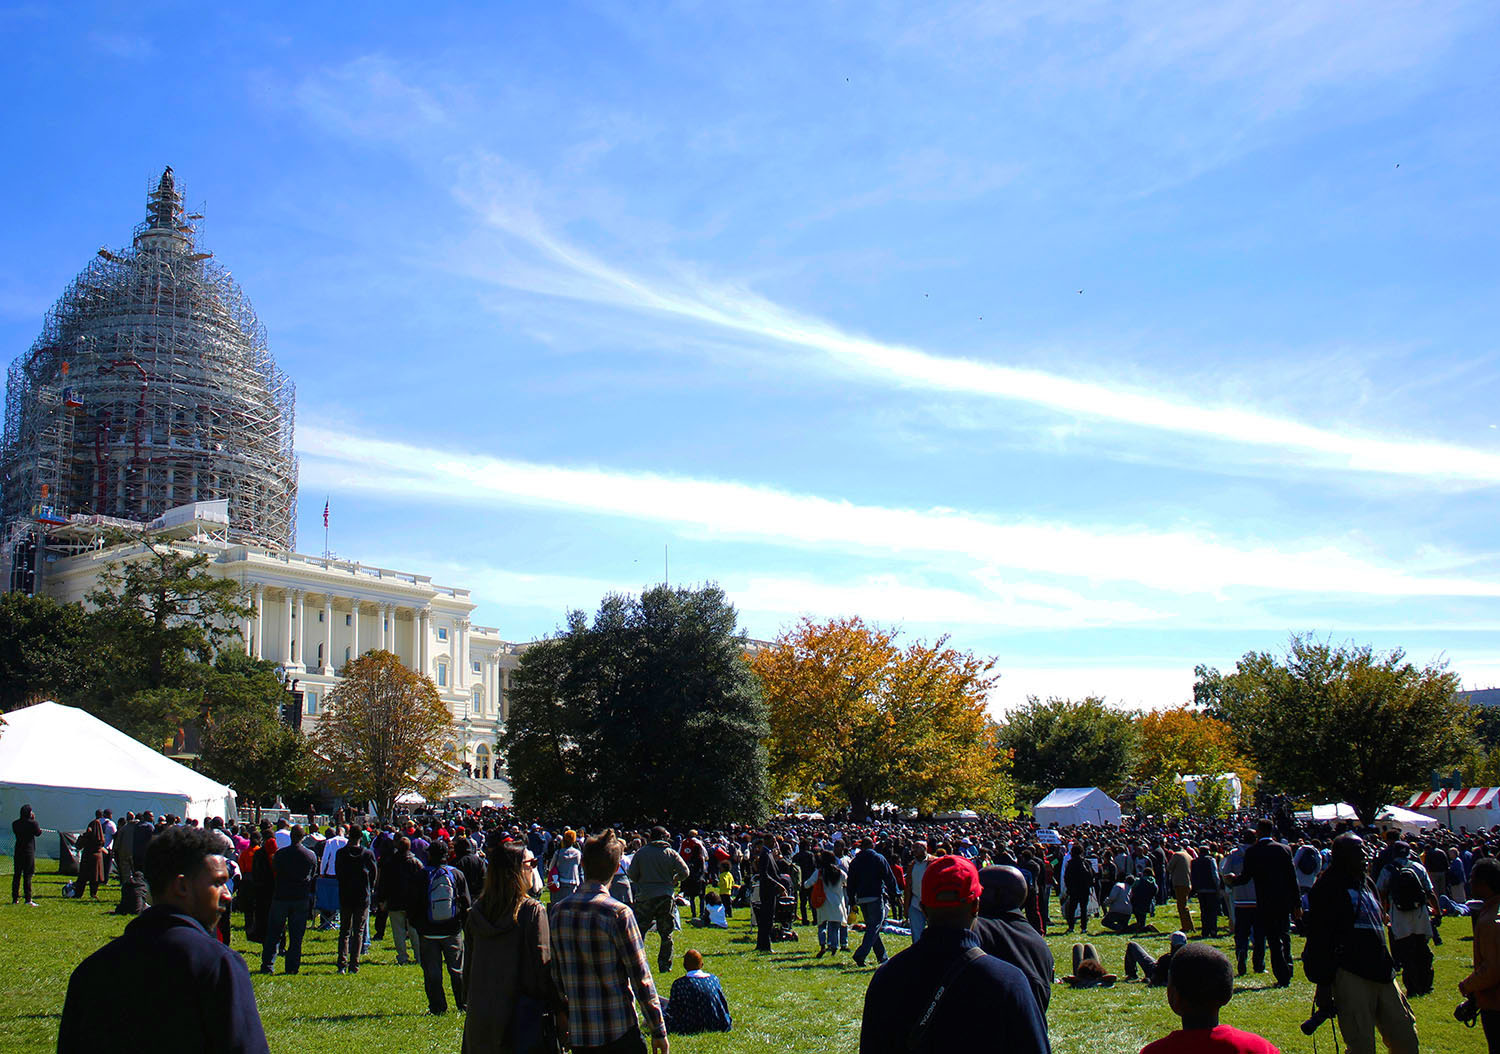 CW_8-Million-Man-March-on-Capitol_use.jpg?time=1592763689